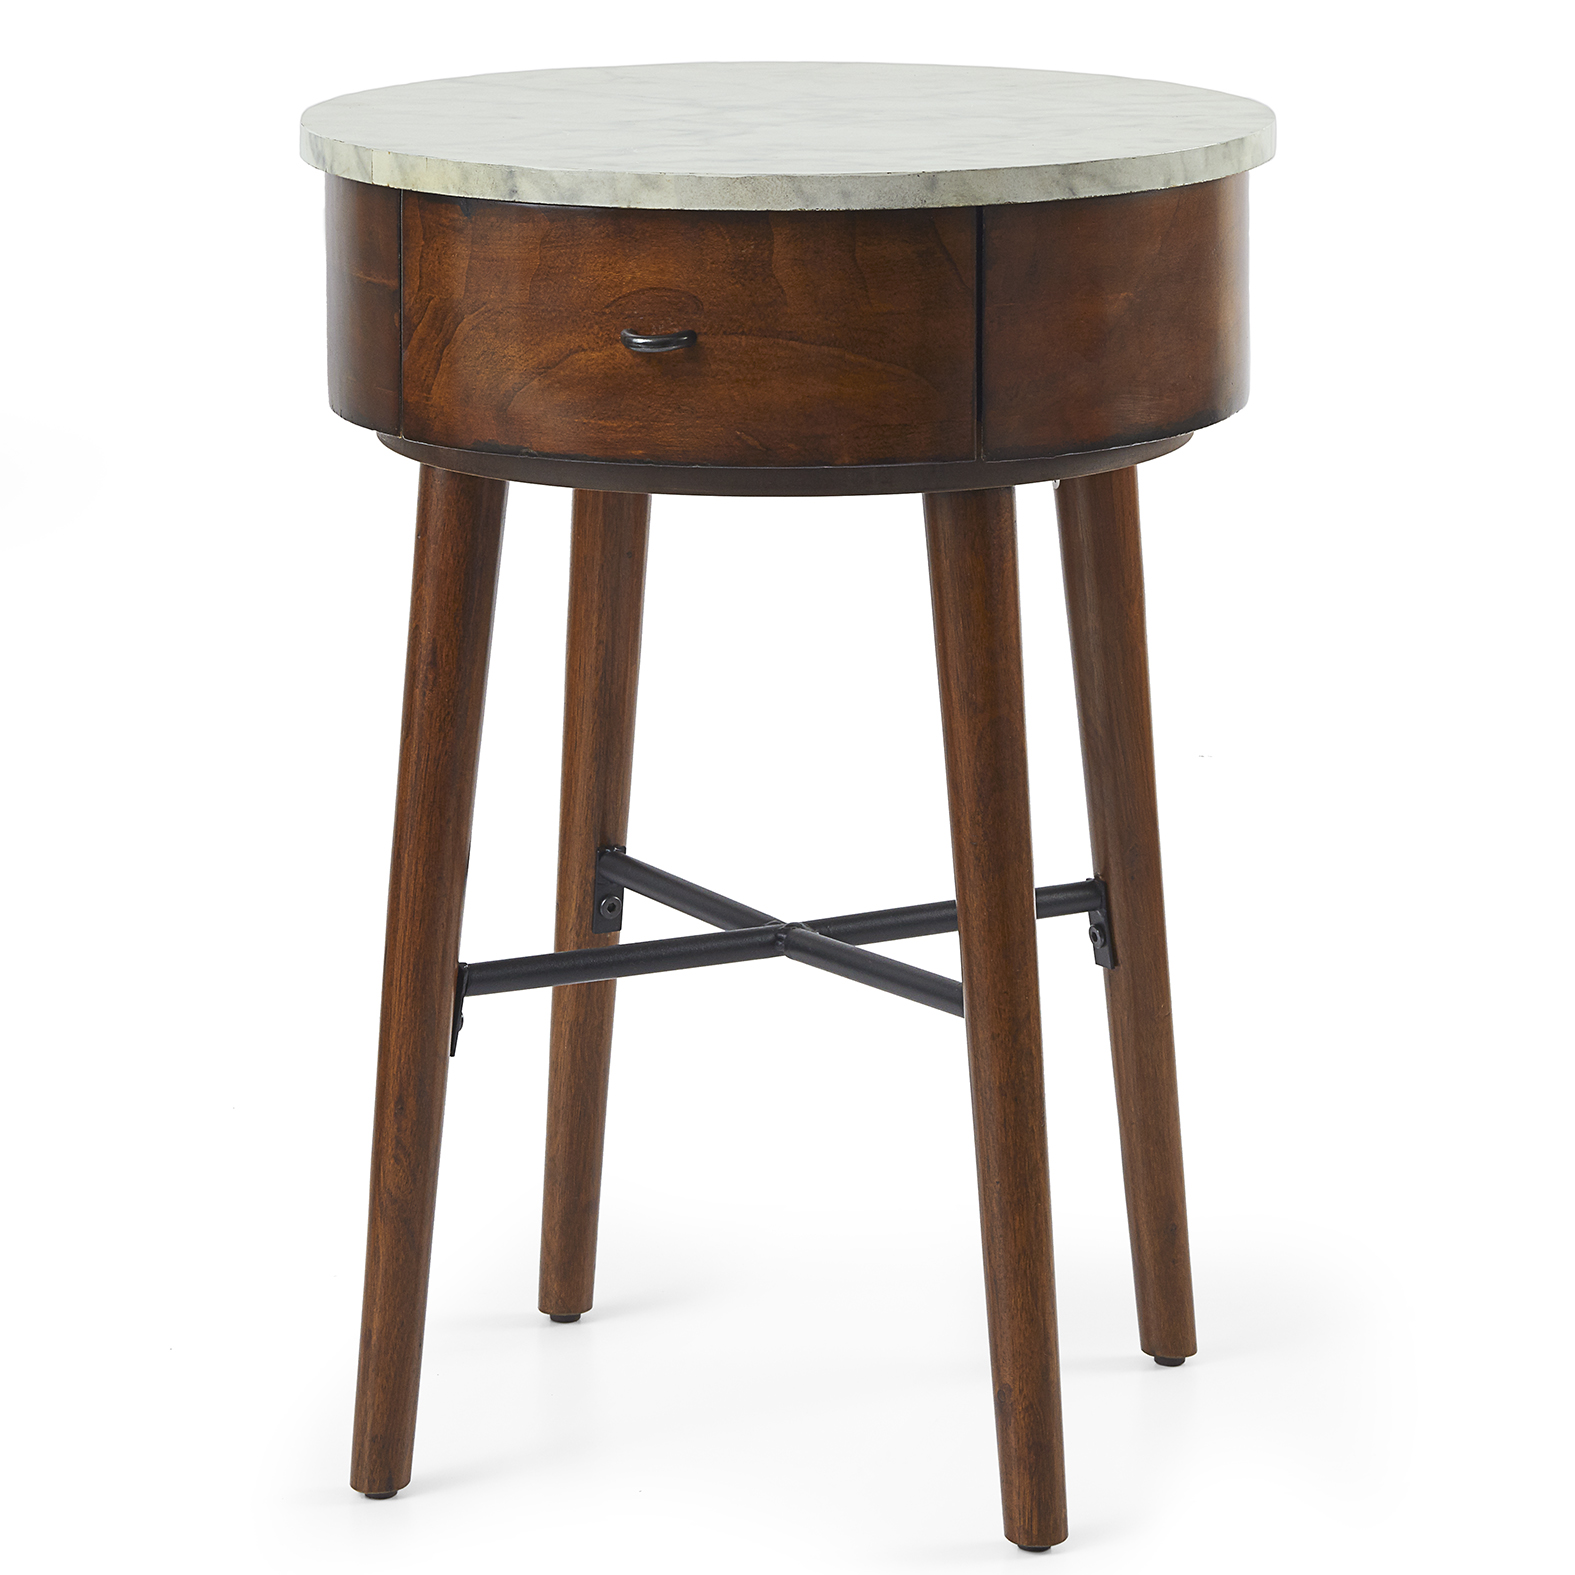 round accent end table faux marble top sofa chair side drawer details patio umbrellas ethan allen country french coffee outdoor cooler stand reclaimed barn door cube large mirror